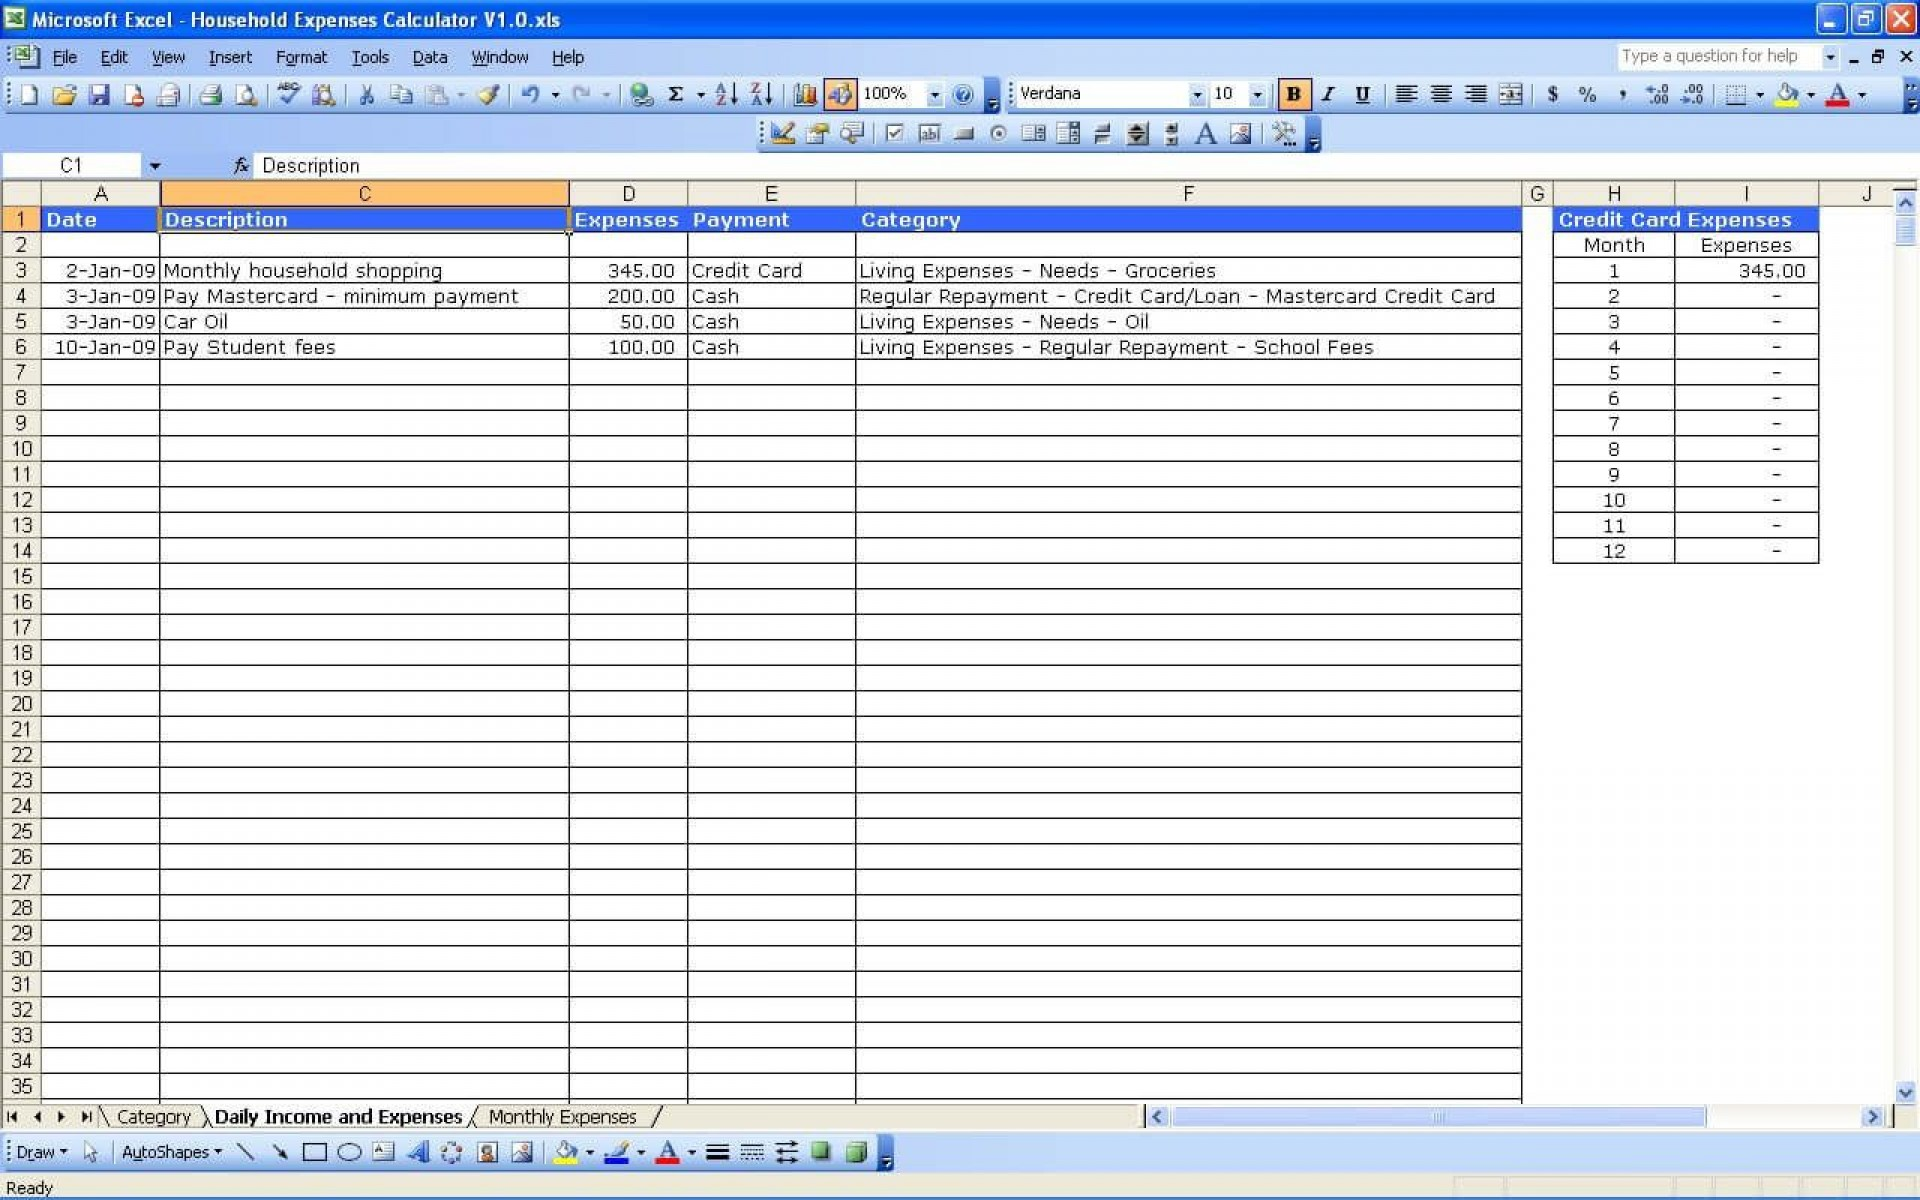 006 Beautiful Personal Expense Tracker Template Excel Image  Finance Spreadsheet1920